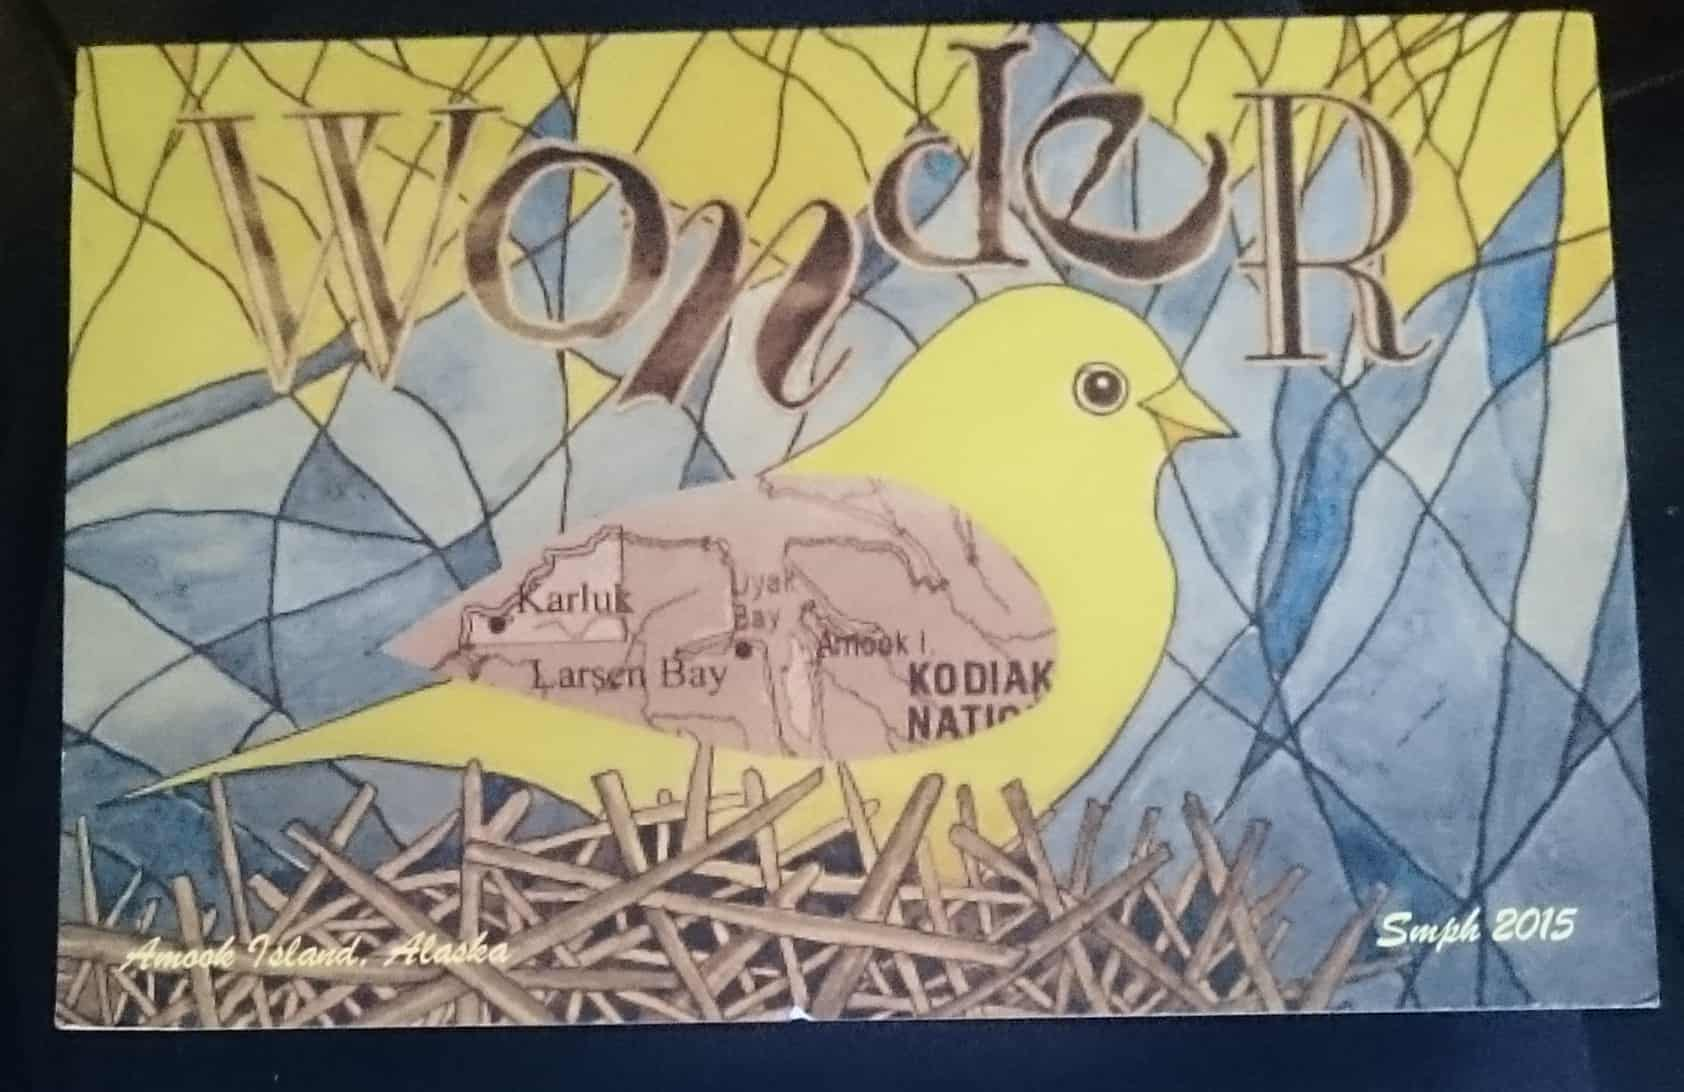 Liberate Your Art in a Postcard Swap